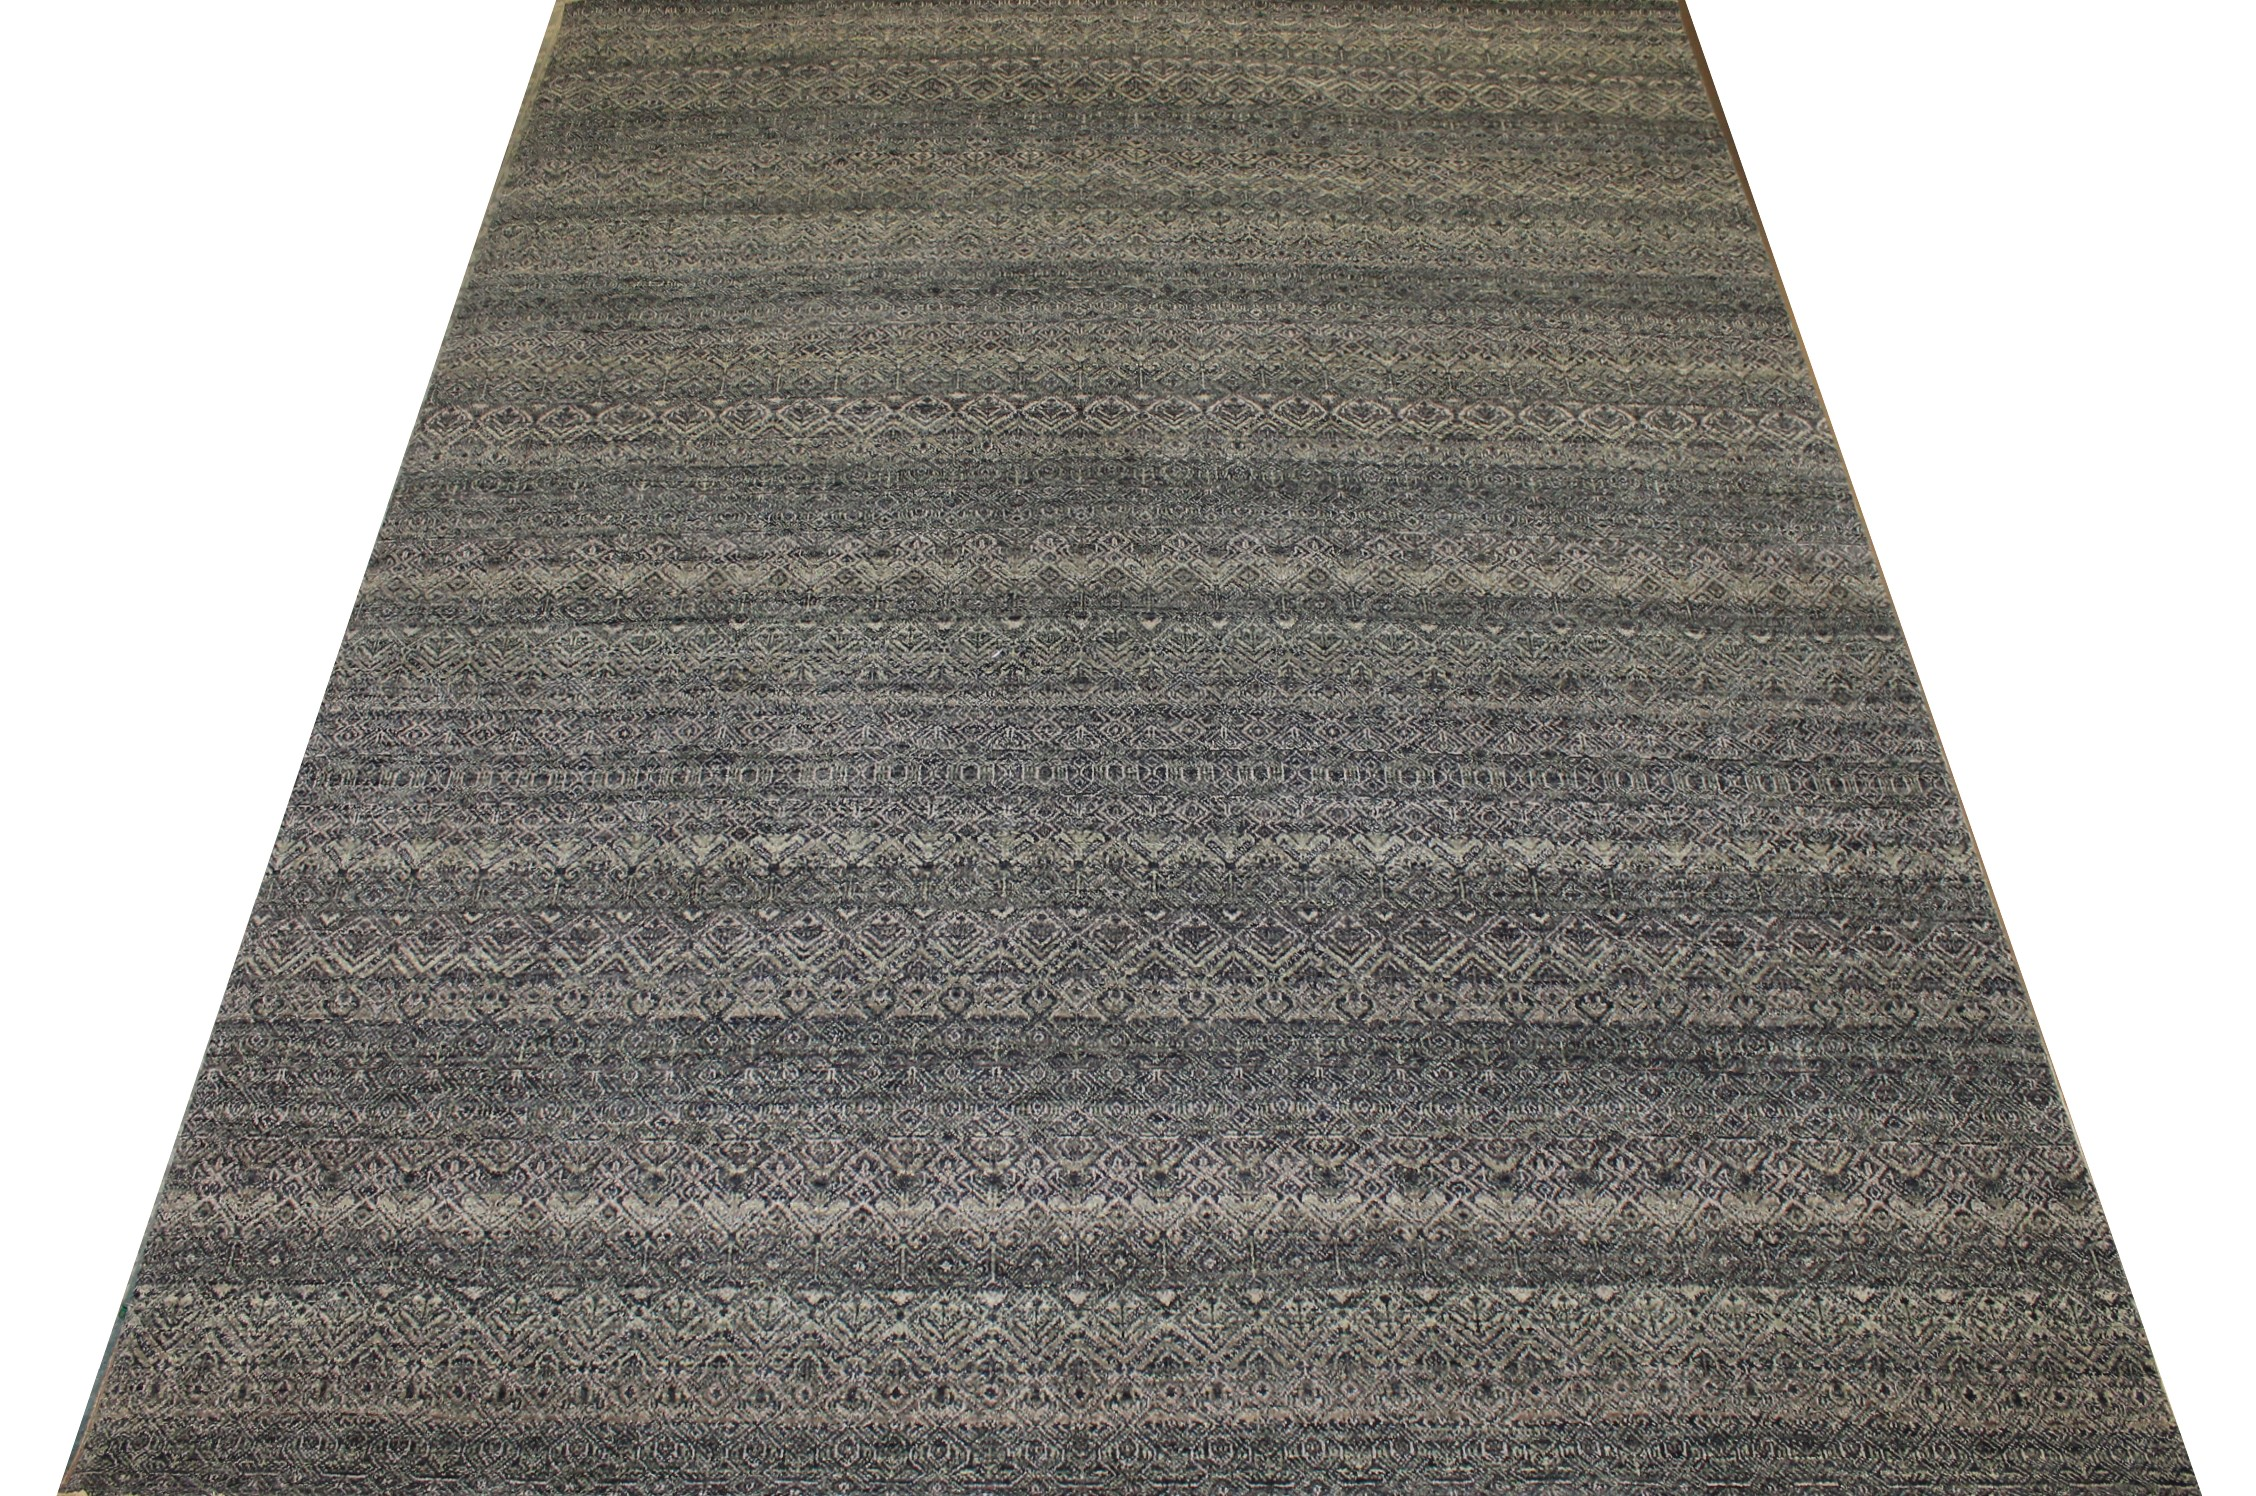 9x12 Casual Hand Knotted Wool Area Rug - MR024270